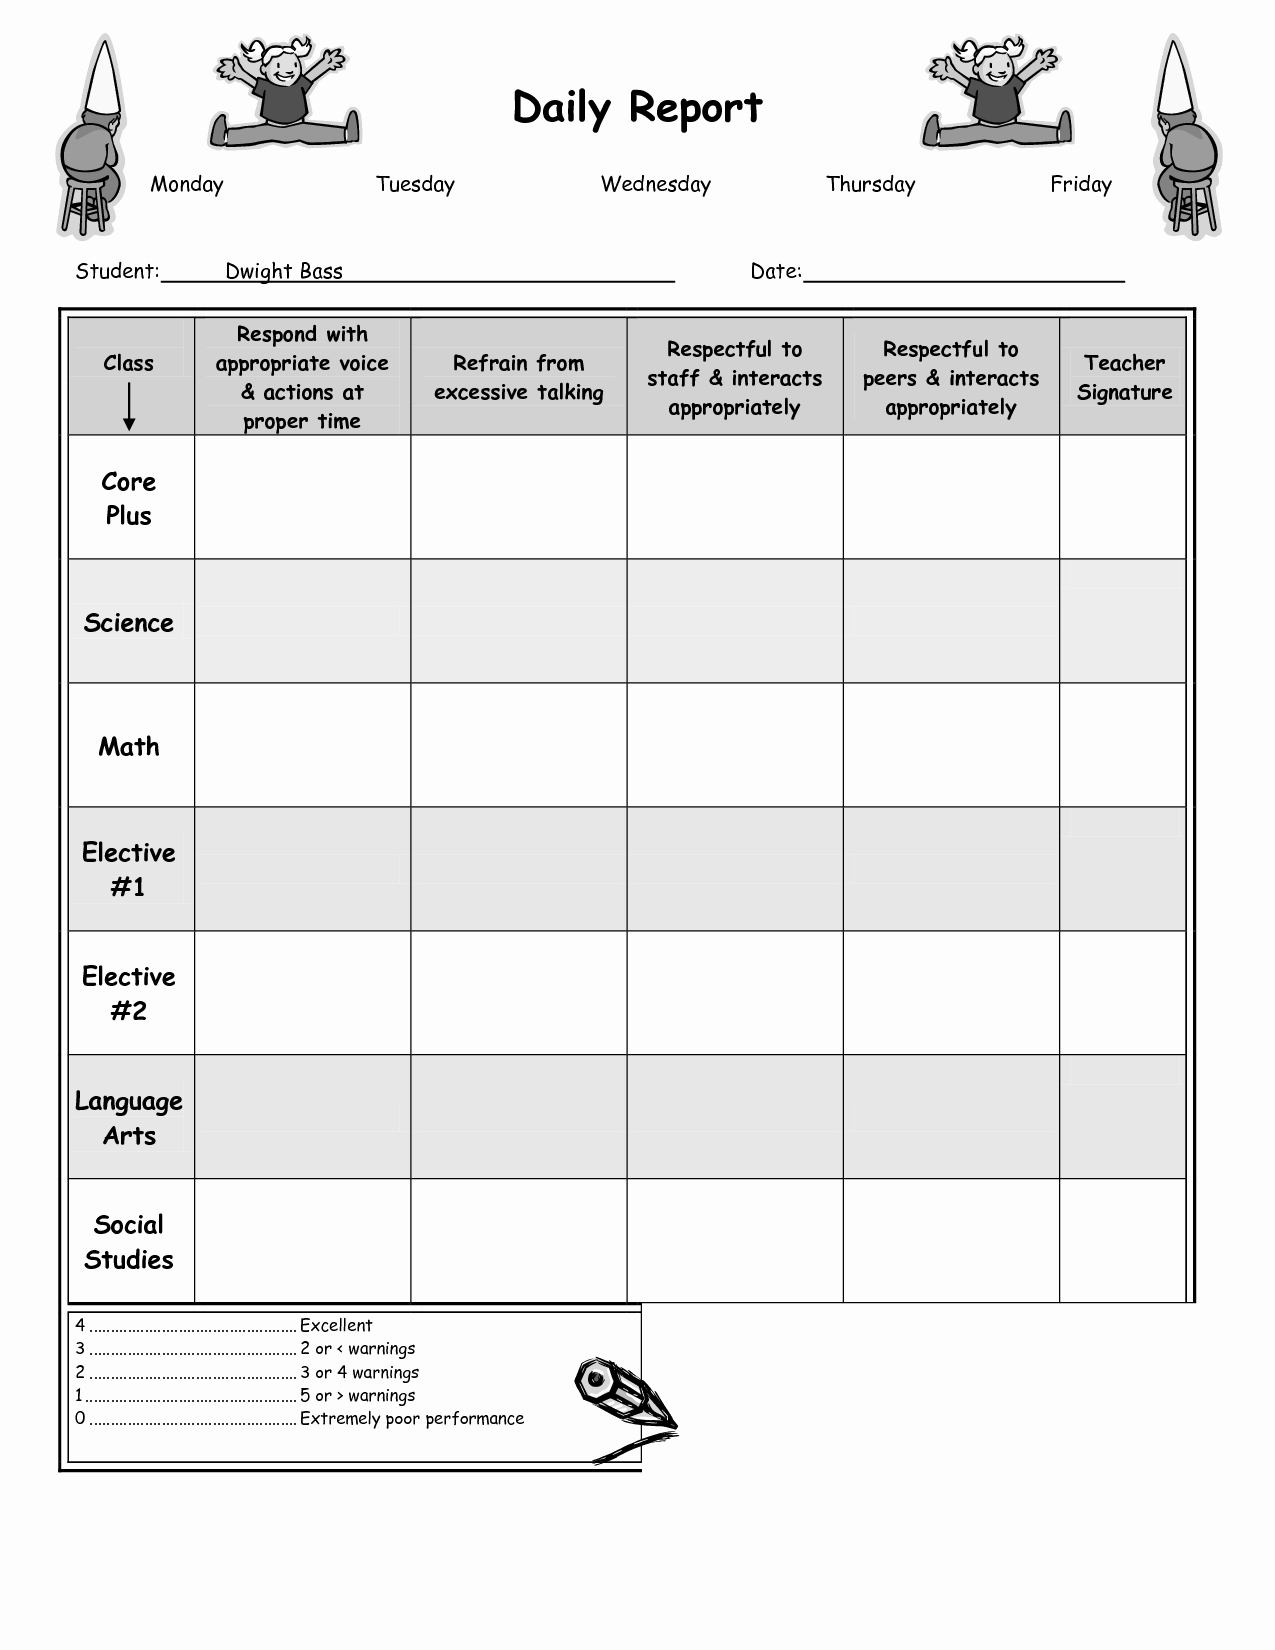 Daily Behavior Chart Template Elegant the Gallery for Daily Behavior Chart Middle School